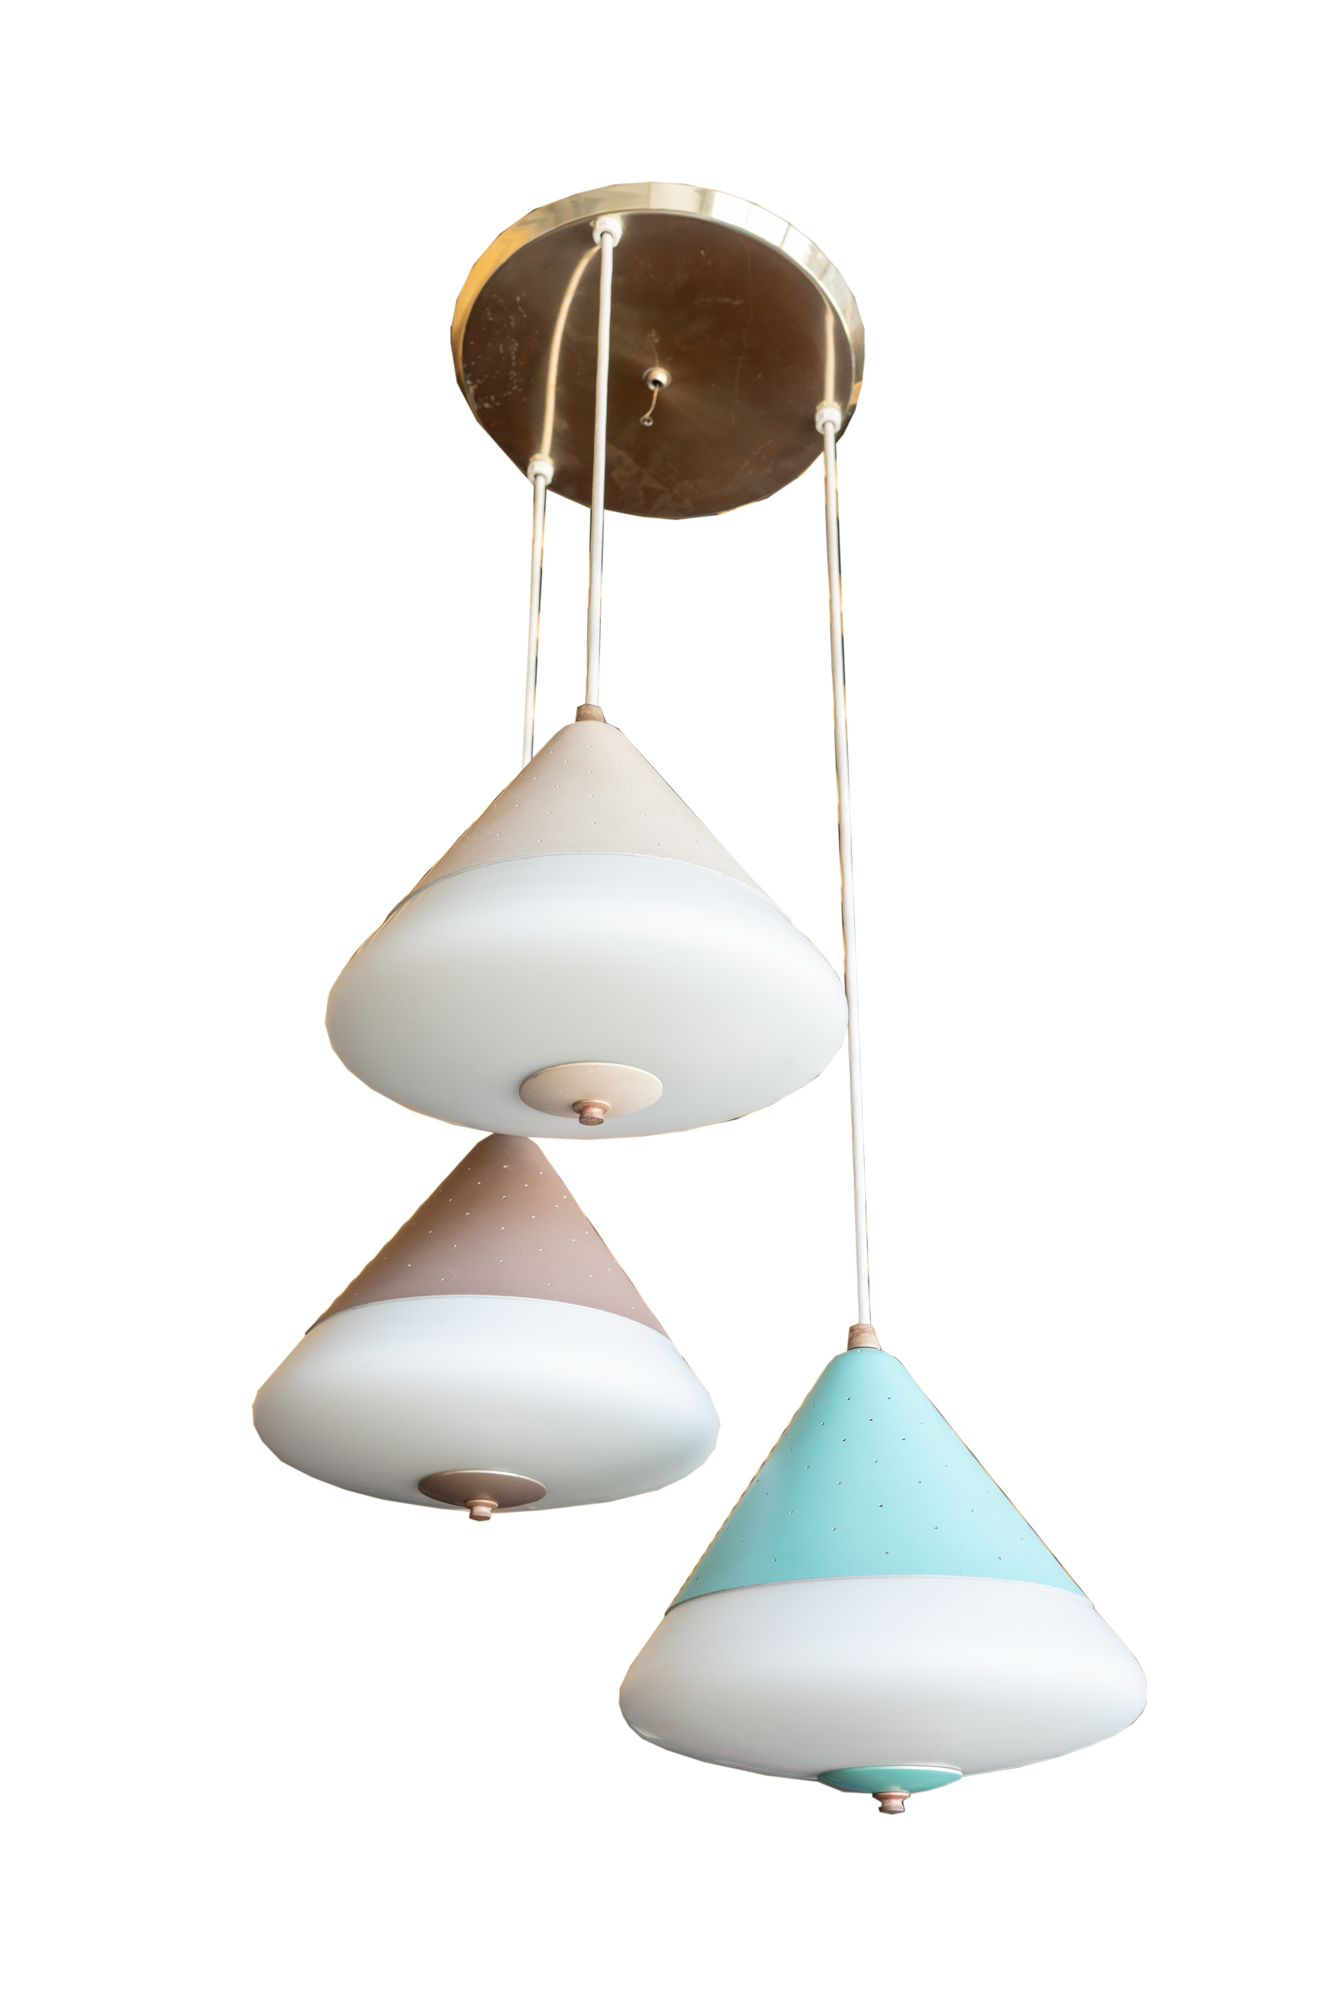 Hanging Pendant Light - $1450